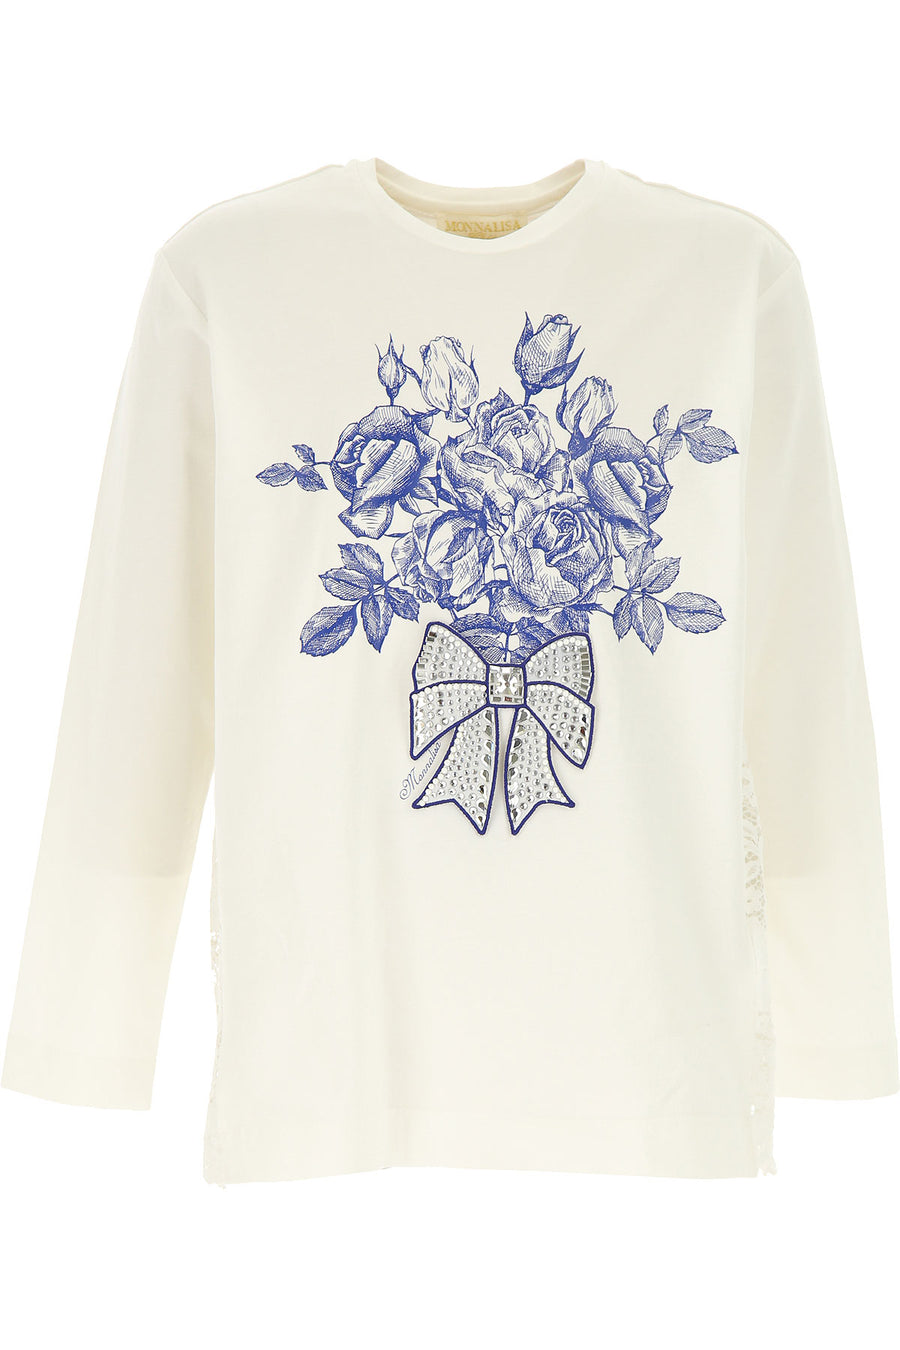 T-SHIRT ST.BOUQUET+PIZZO